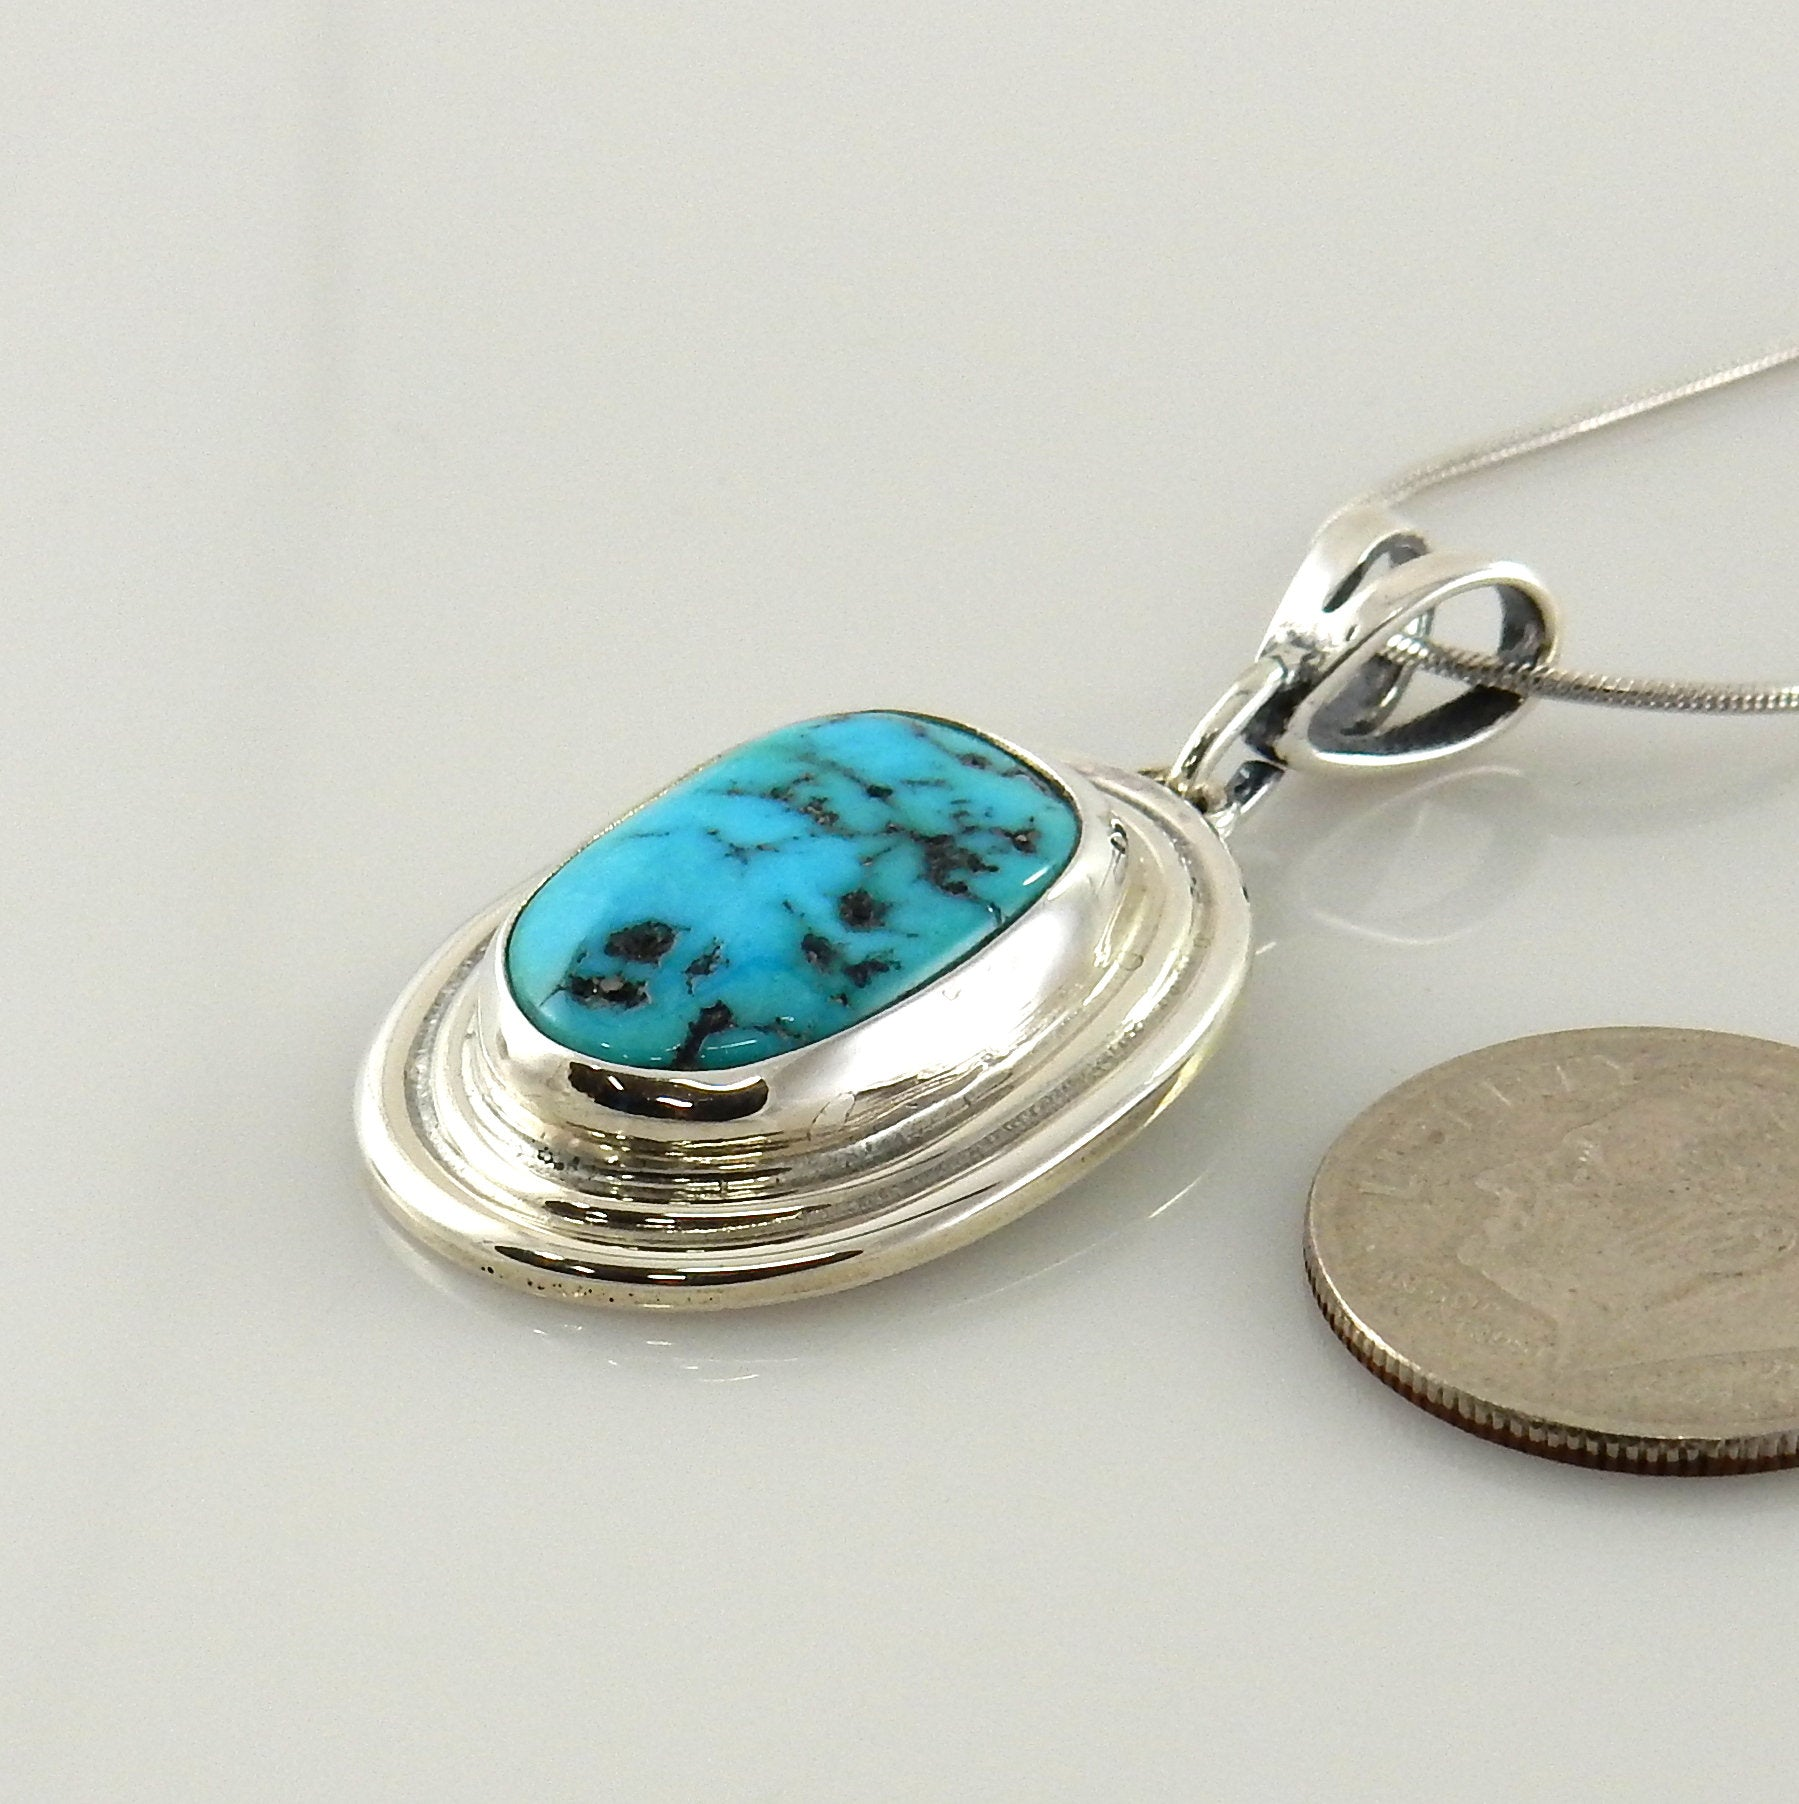 Handmade Sterling Silver Blue Turquoise Pendant